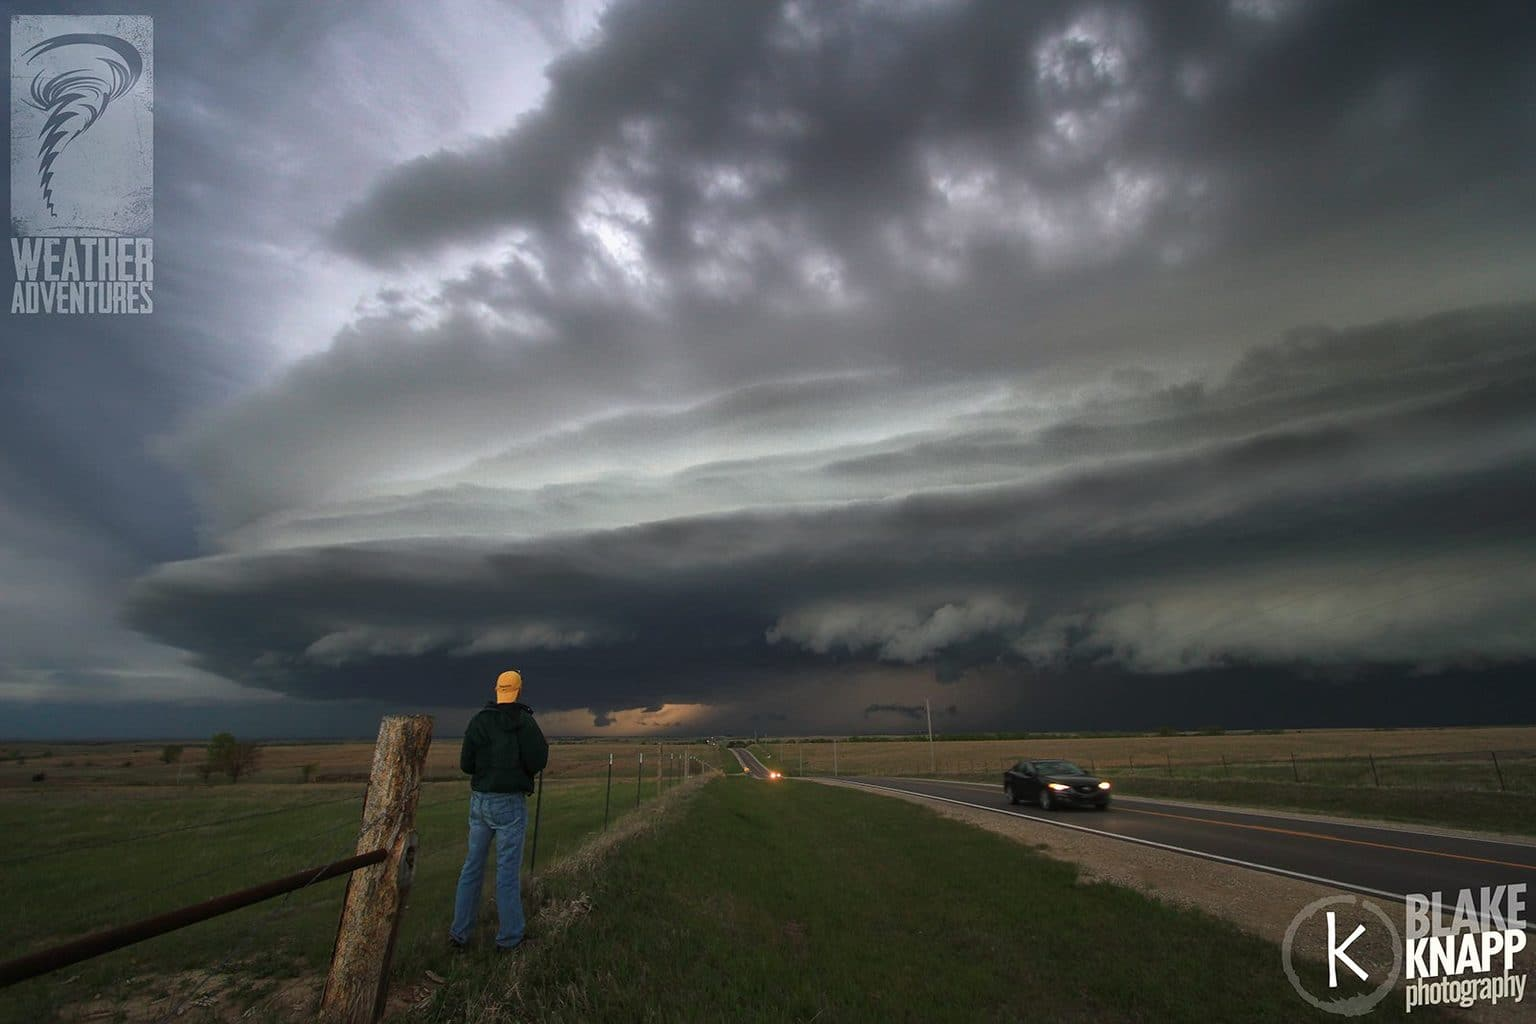 One of our chase tour guests (and friends) watches a storm rake across the Kansas countryside on April 24th